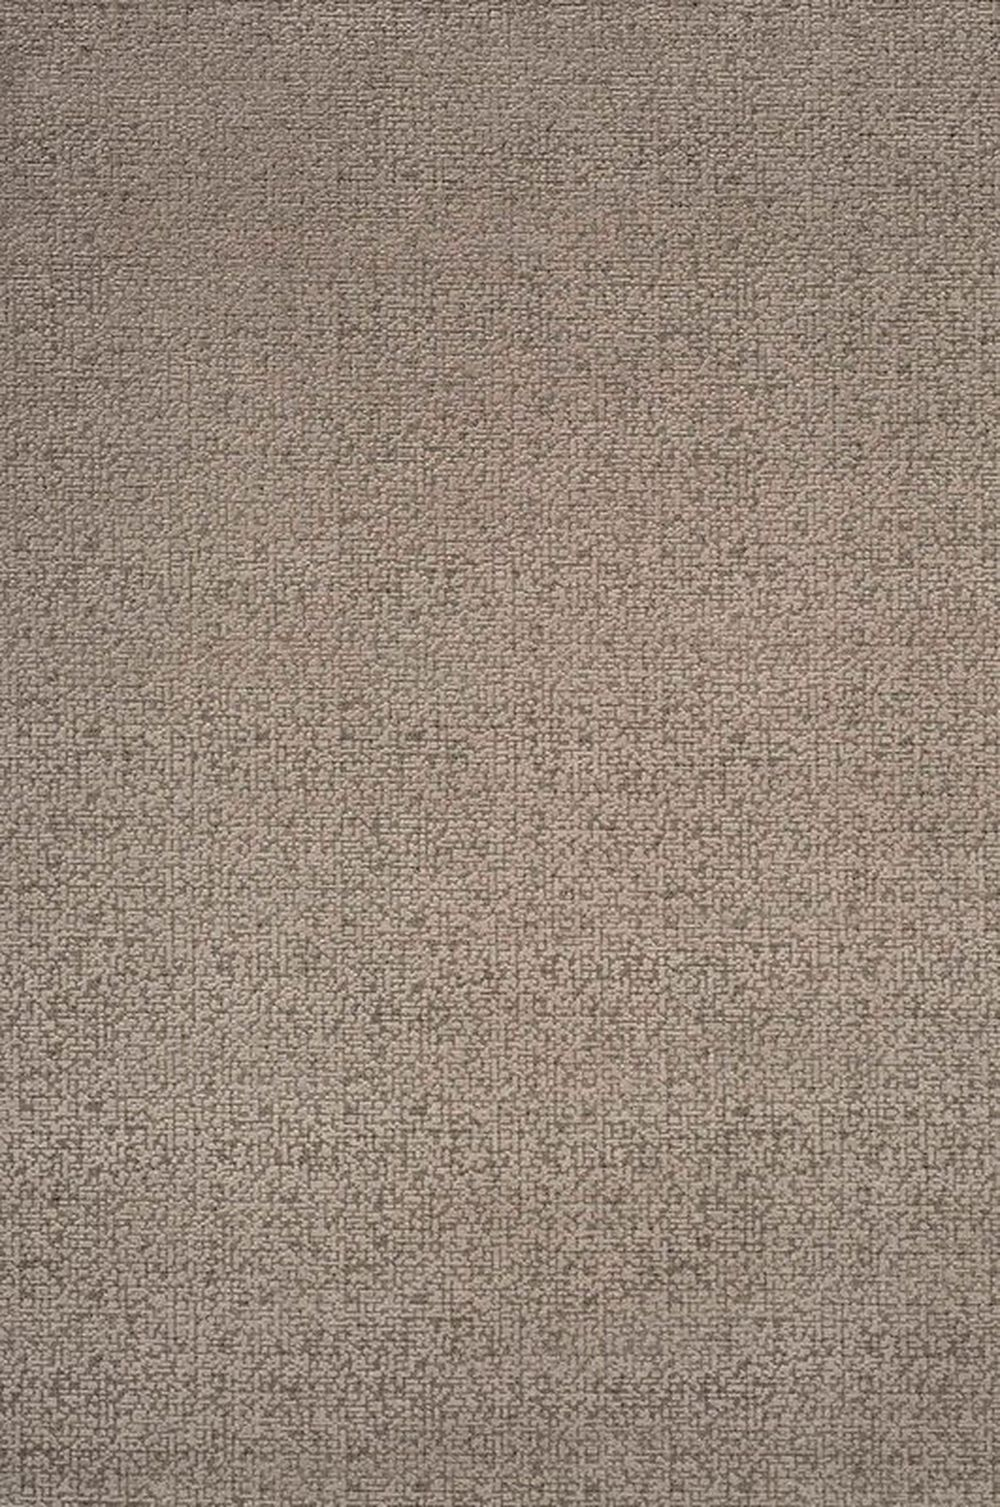 Photo of the fabric Astoria Mink swatch by Mokum. Use for Upholstery Medium Duty, Accessory. Style of Plain, Velvet